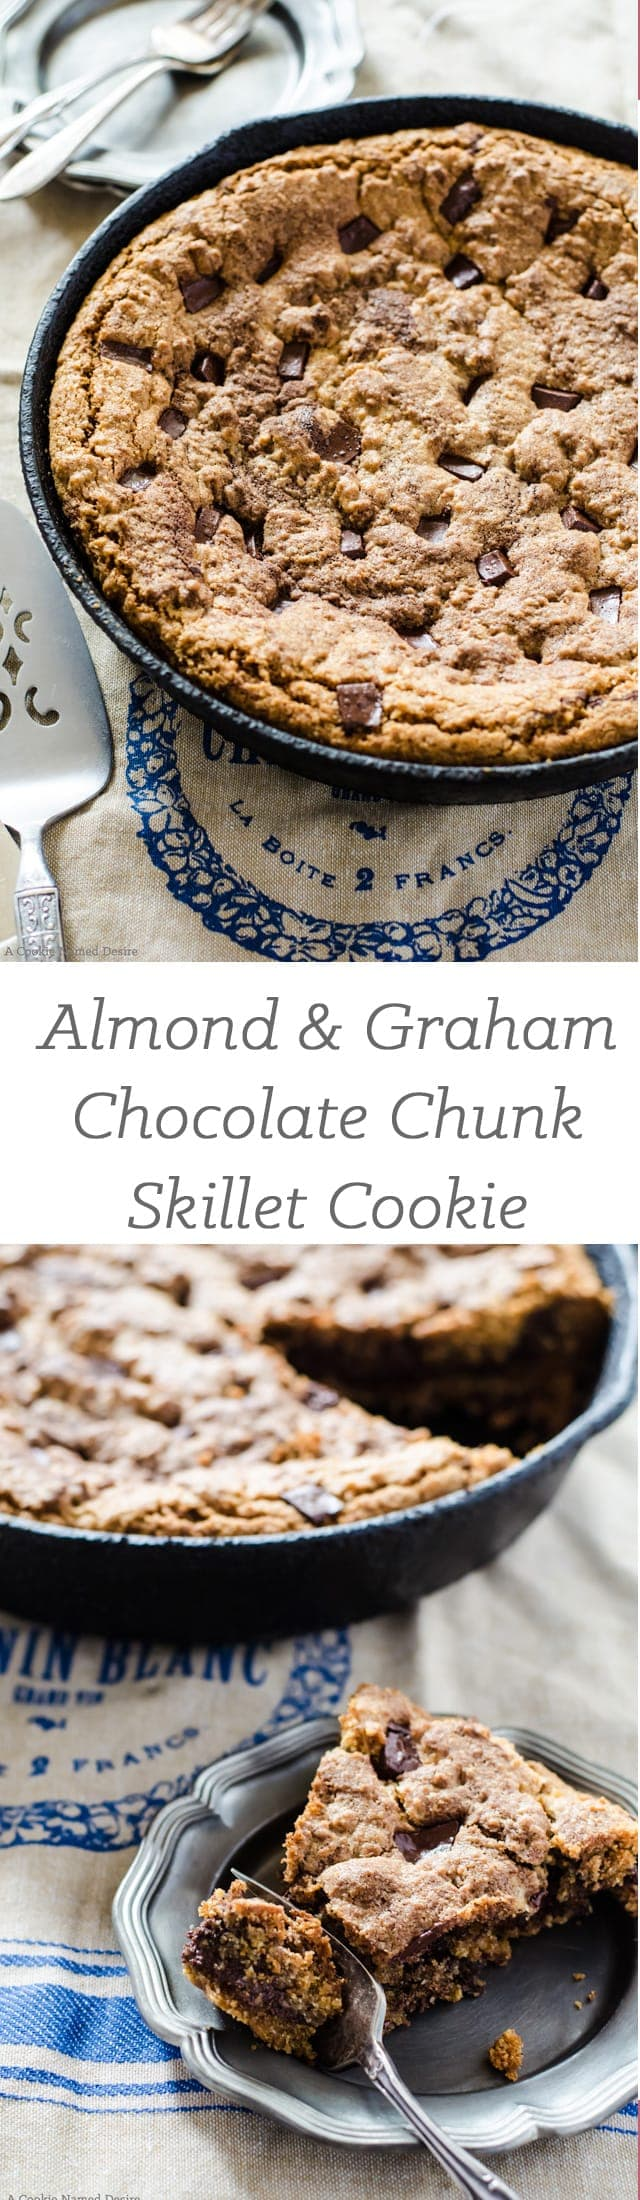 this skillet cookie is crispy and buttery on the outside and chewy and chocolaty on the inside